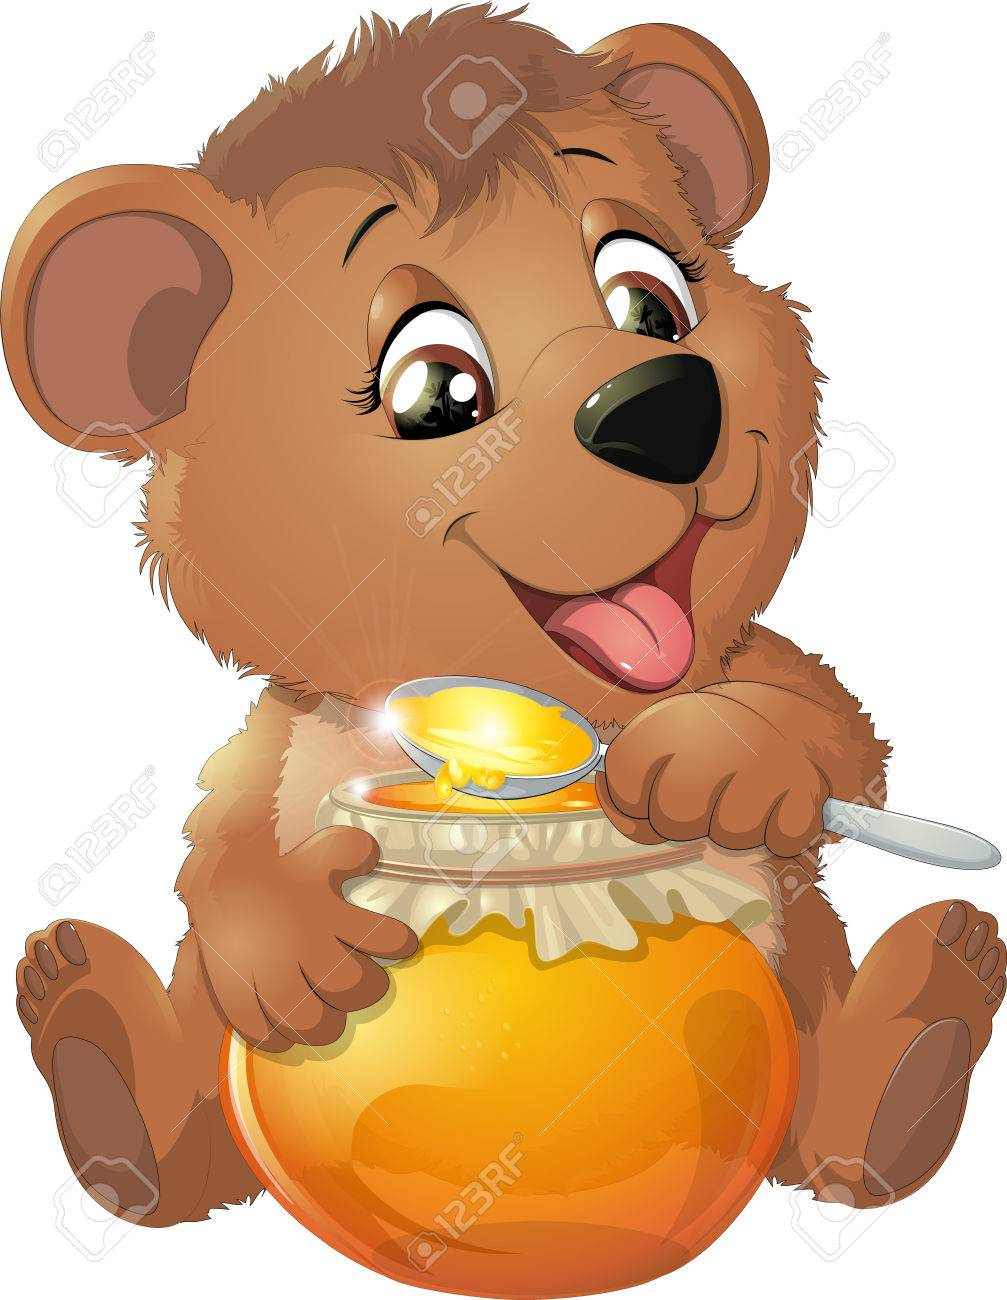 Bear eat honey on a white background.